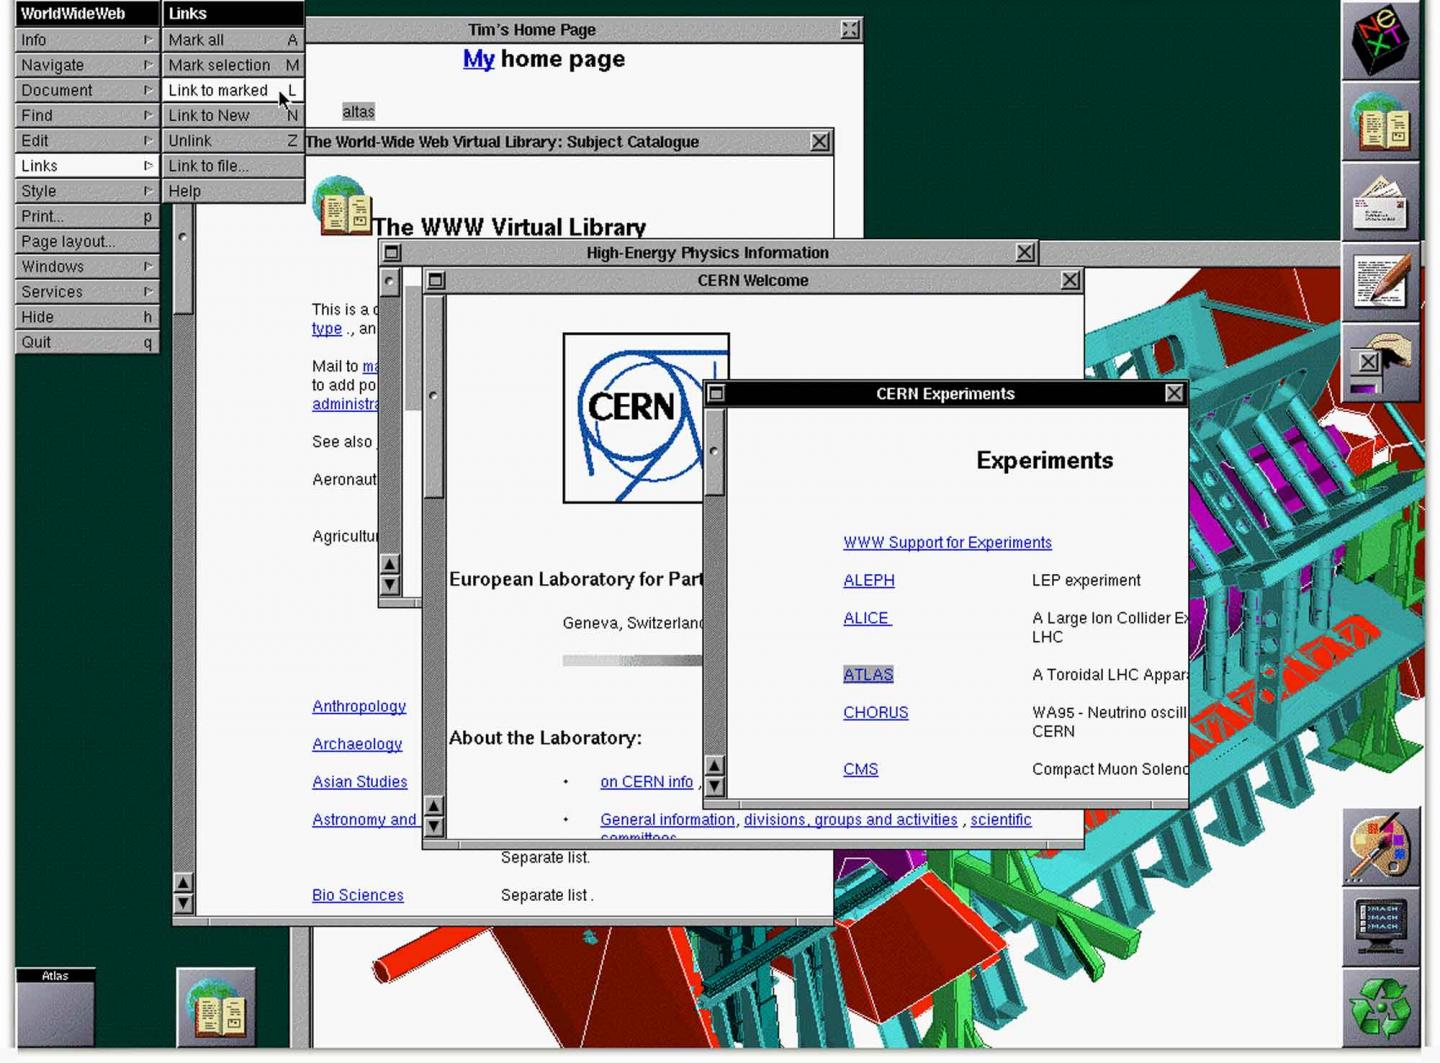 Screenshot of the early world wide web, showing the CERN's website